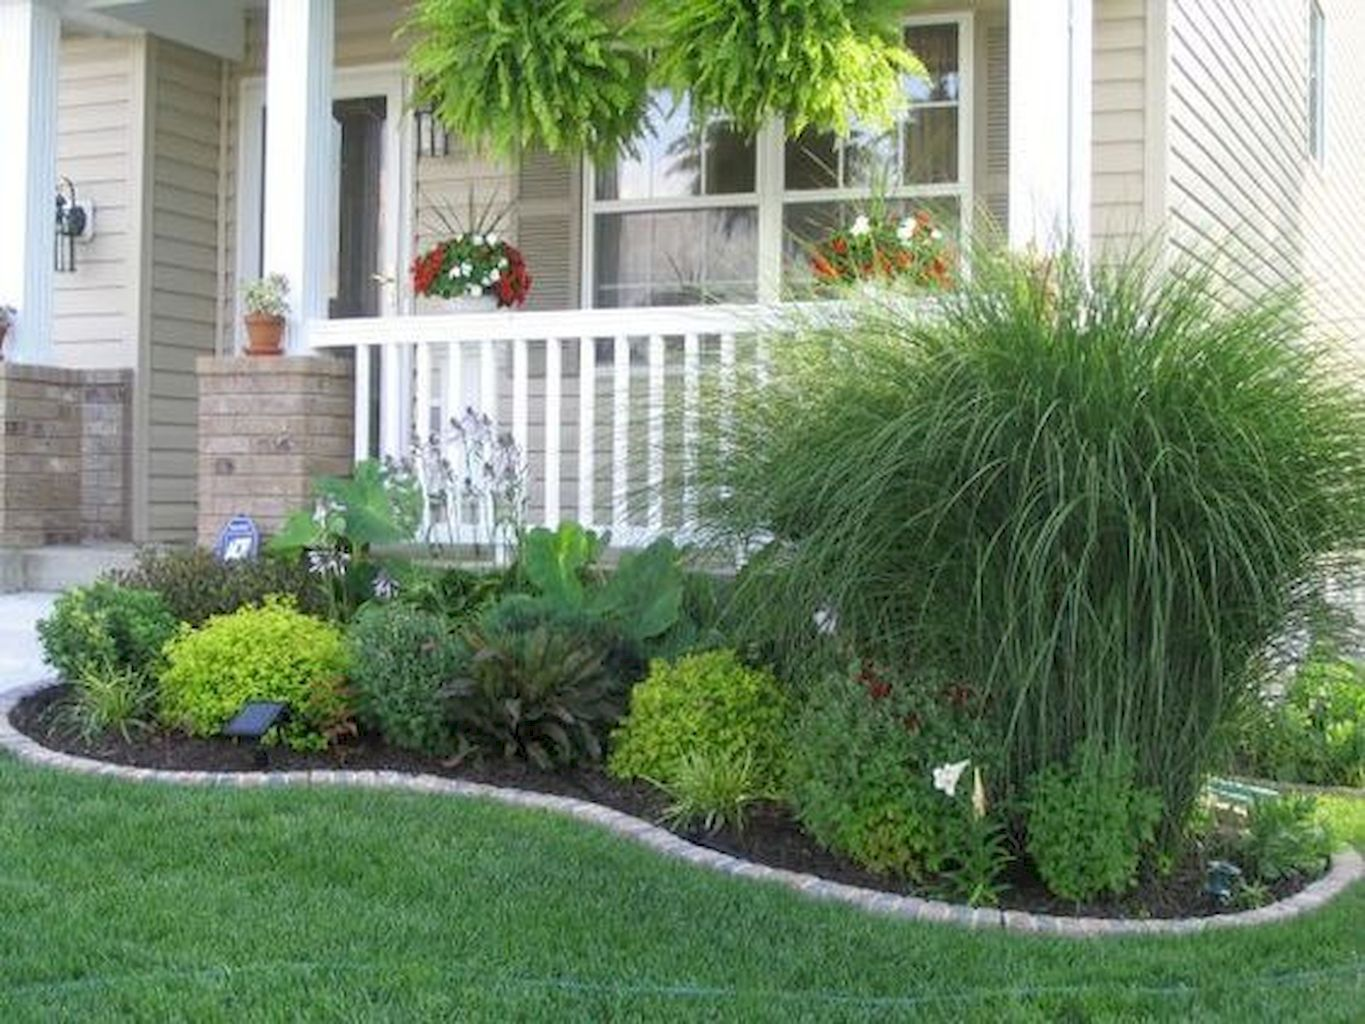 Small front yard landscaping ideas on a budget 61 small for Low budget landscaping ideas